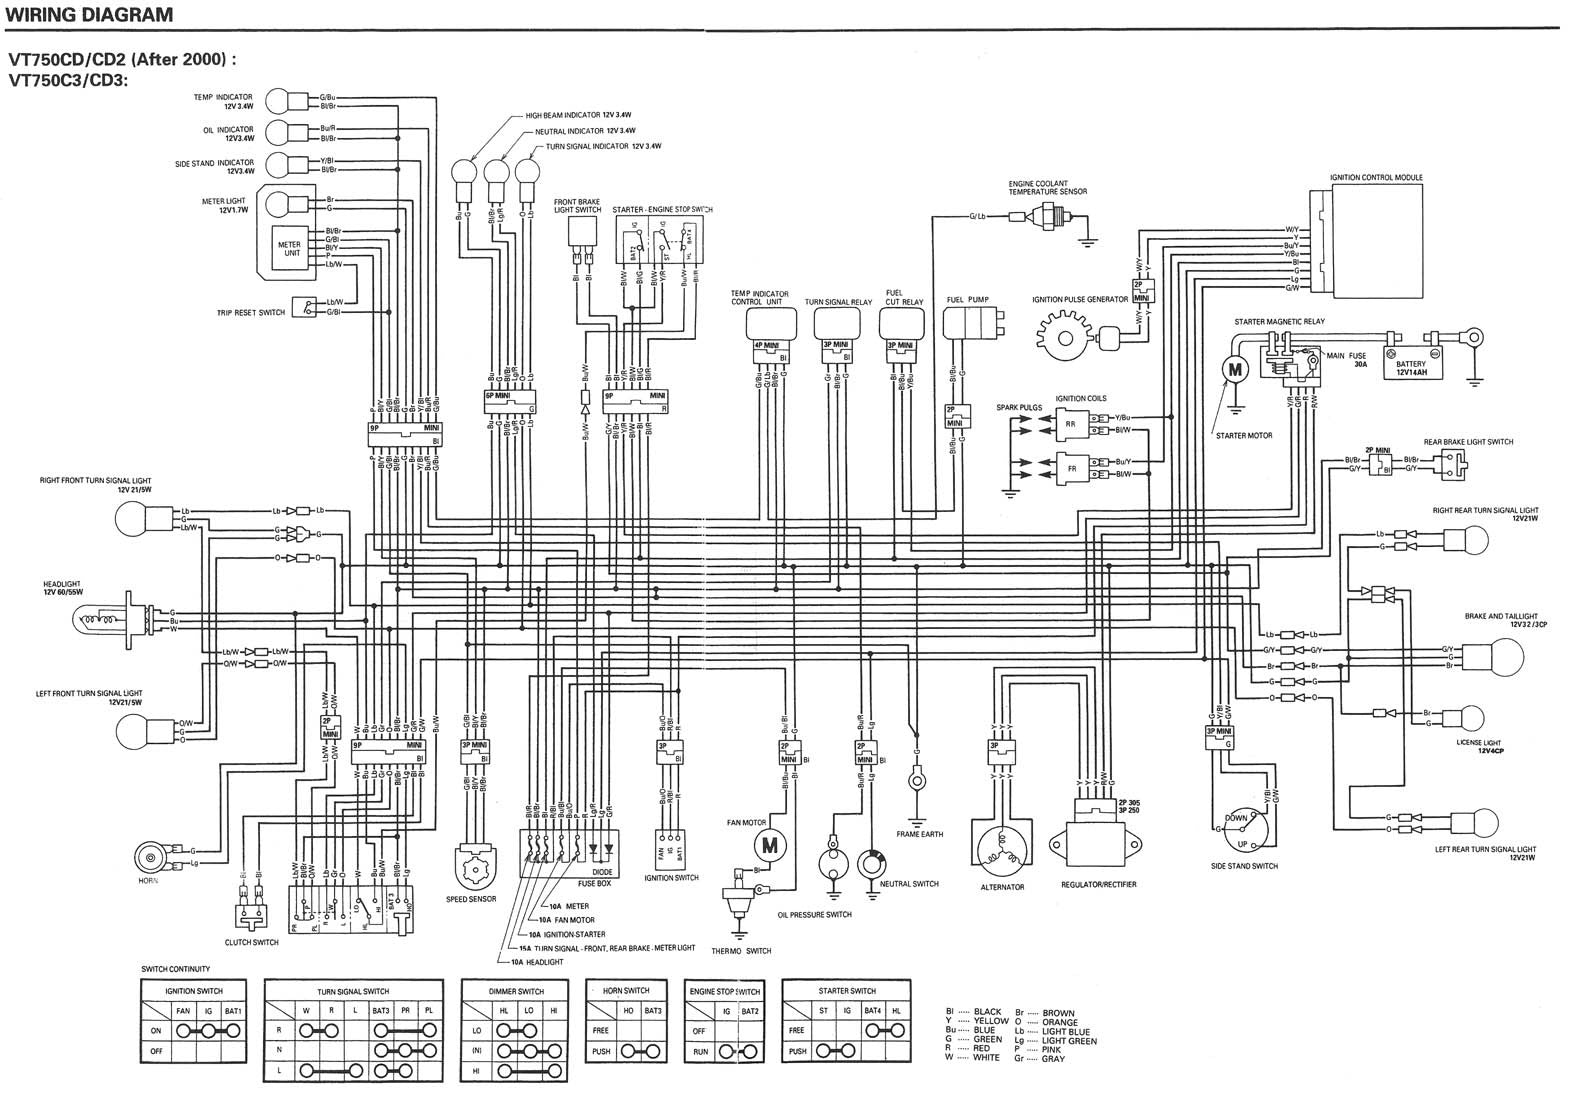 2005 Honda Elet Fuse Box Diagram Wiring Cr V Shadow Diagrams Tj Brutal Customs Support Rh Shoptjbc Com 2008 Accord Layout